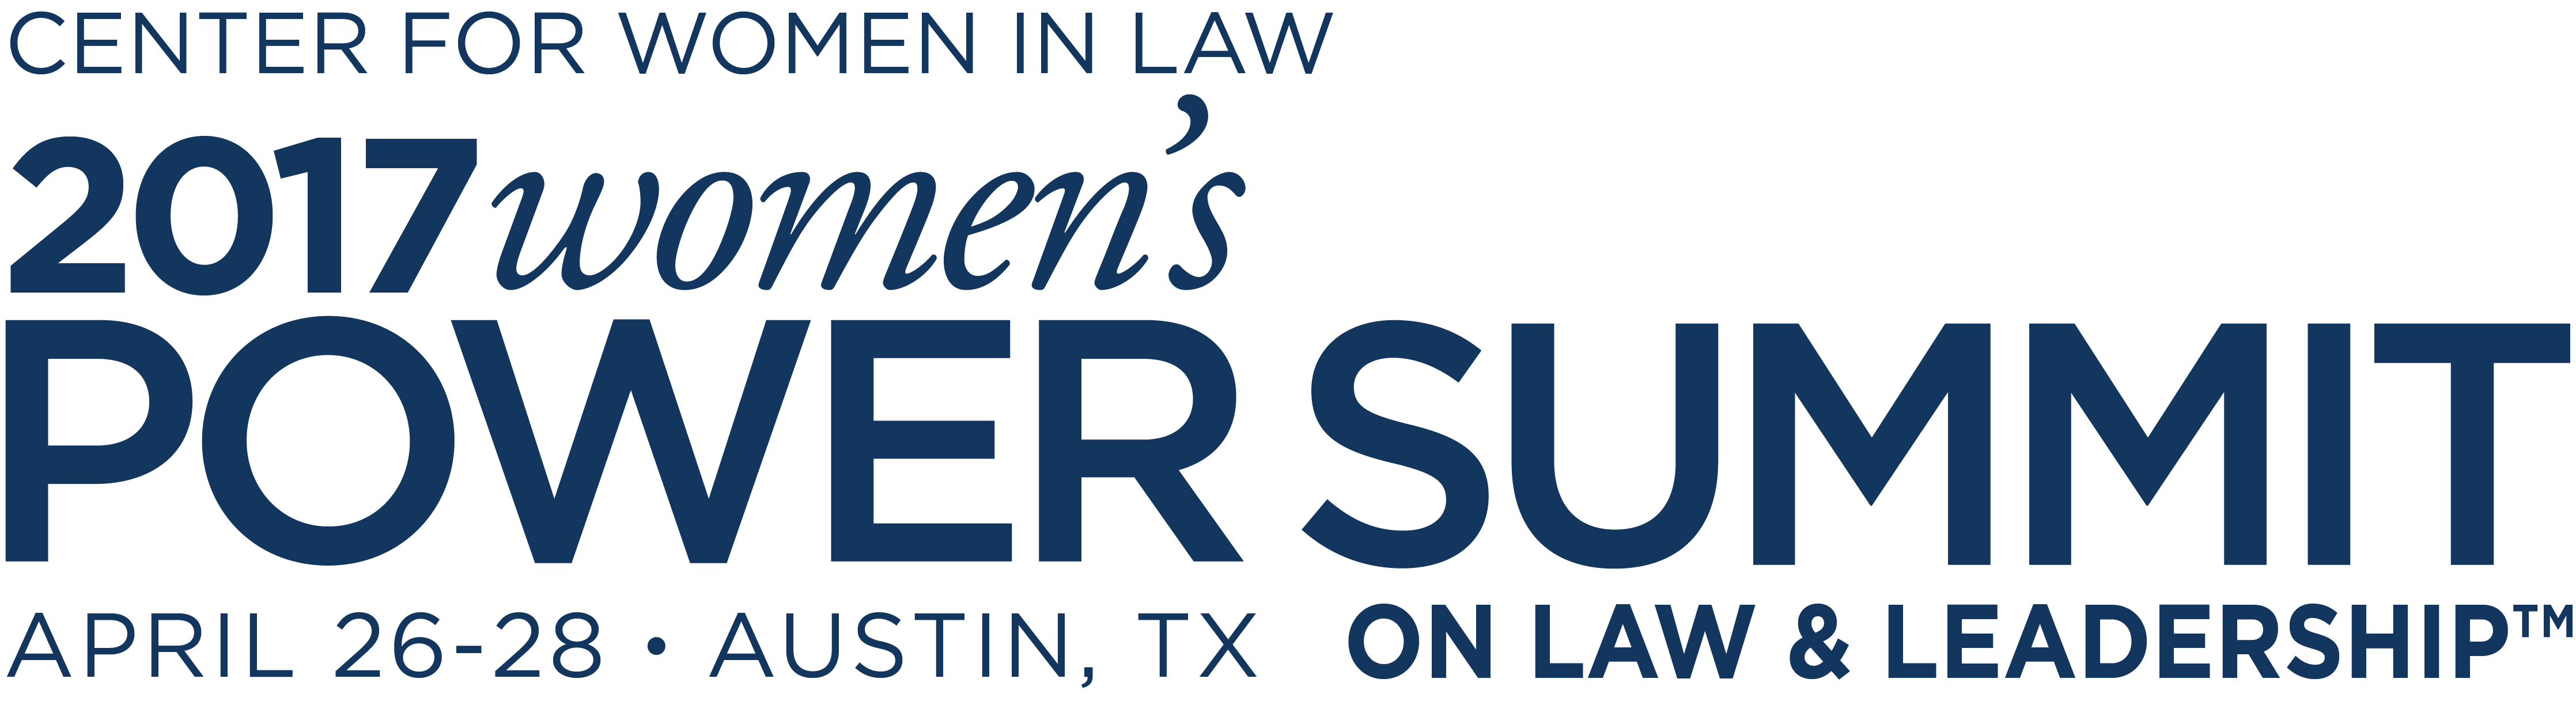 2017 Women's Power Summit on Law & Leadership